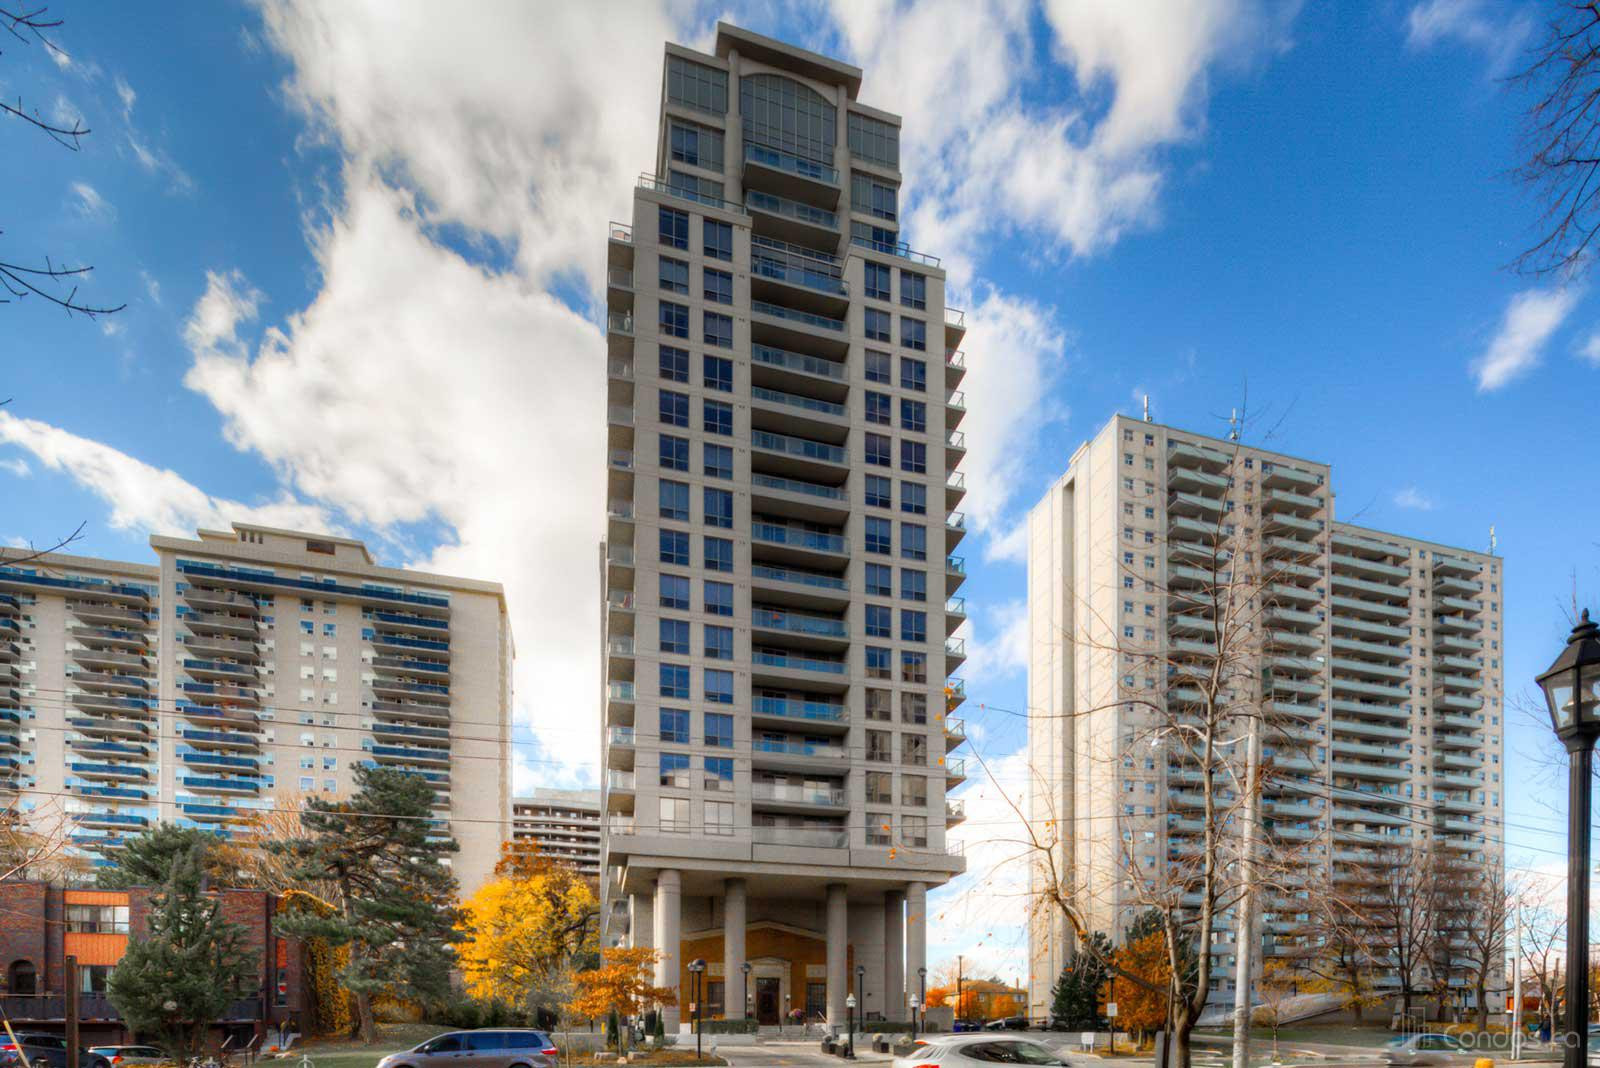 High Park Condominiums at 70 High Park Ave, Toronto 0